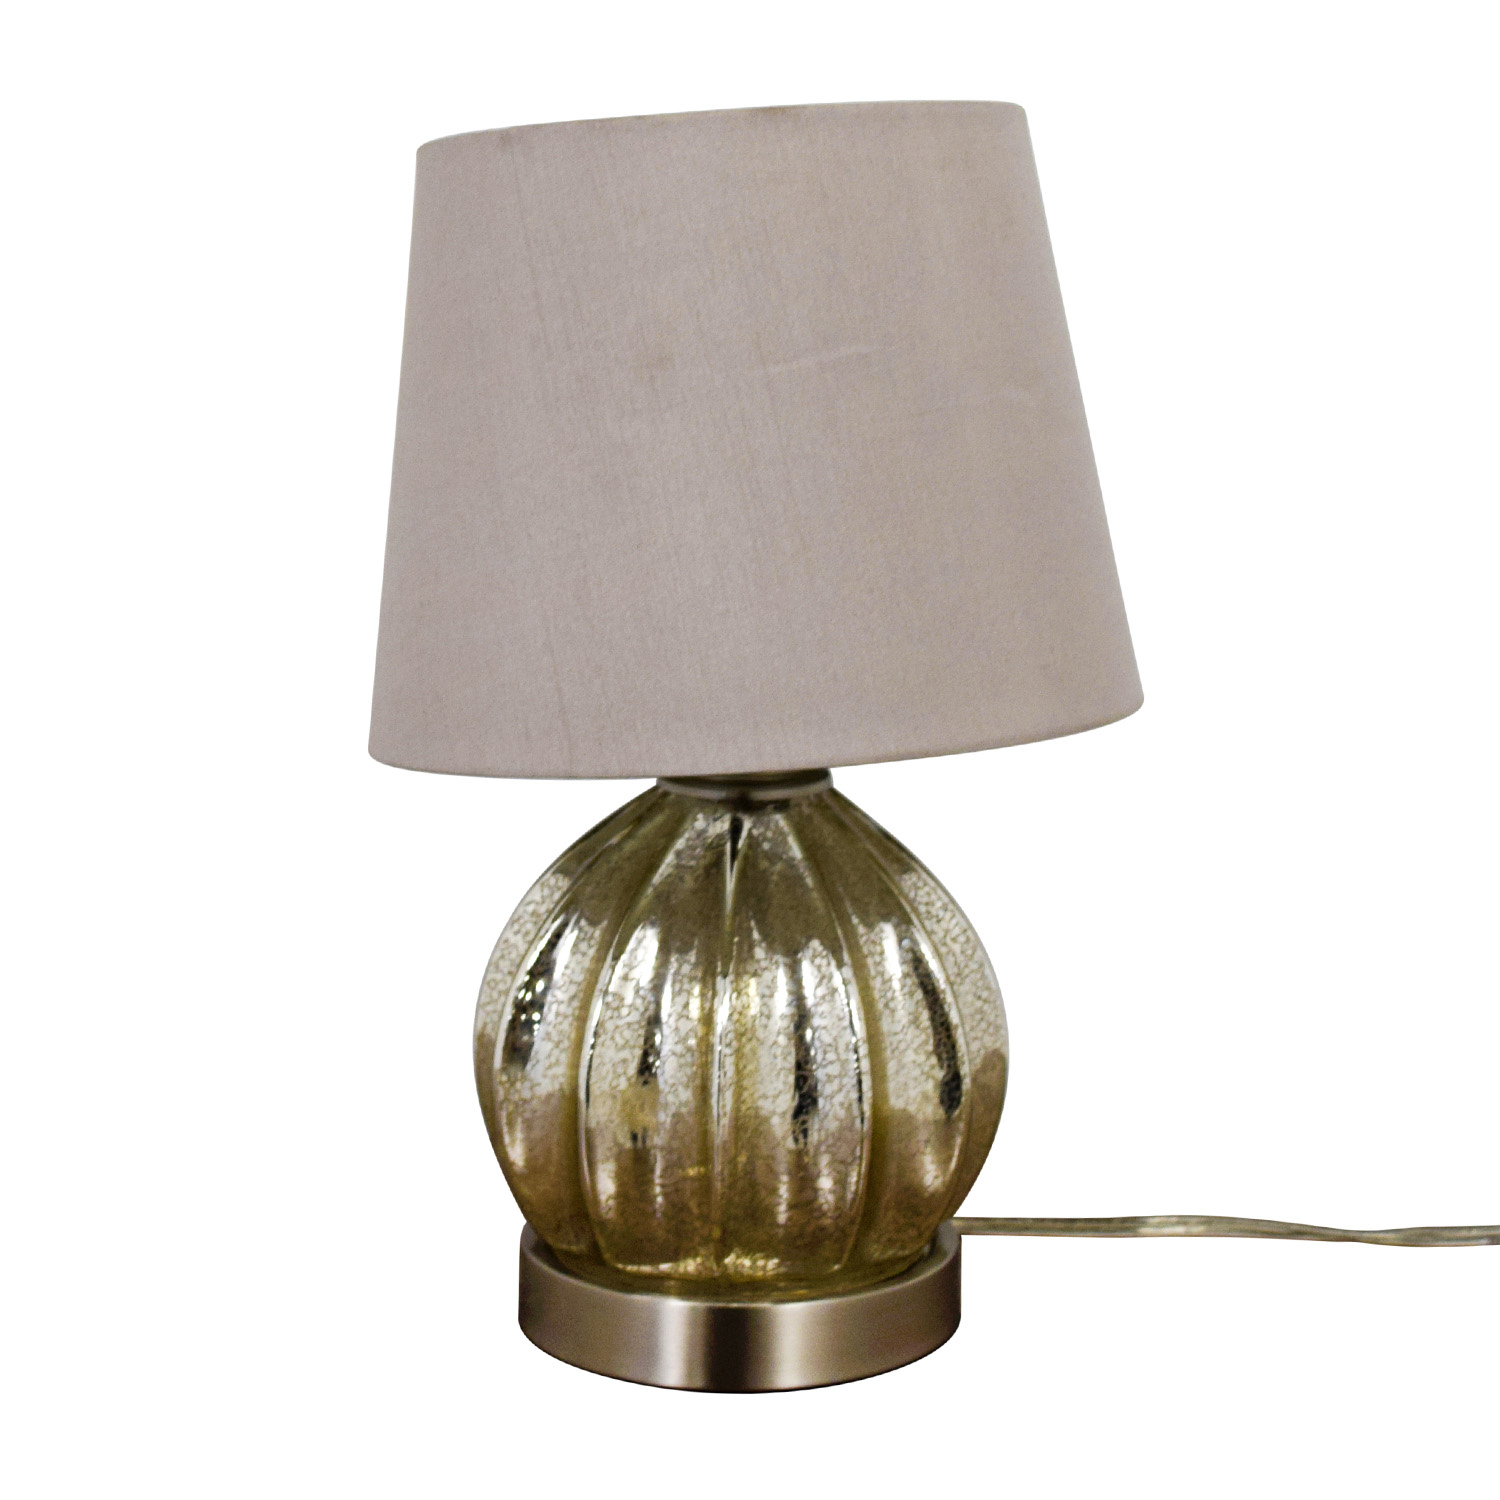 buy Round Mercury Glass Table Lamp Decor